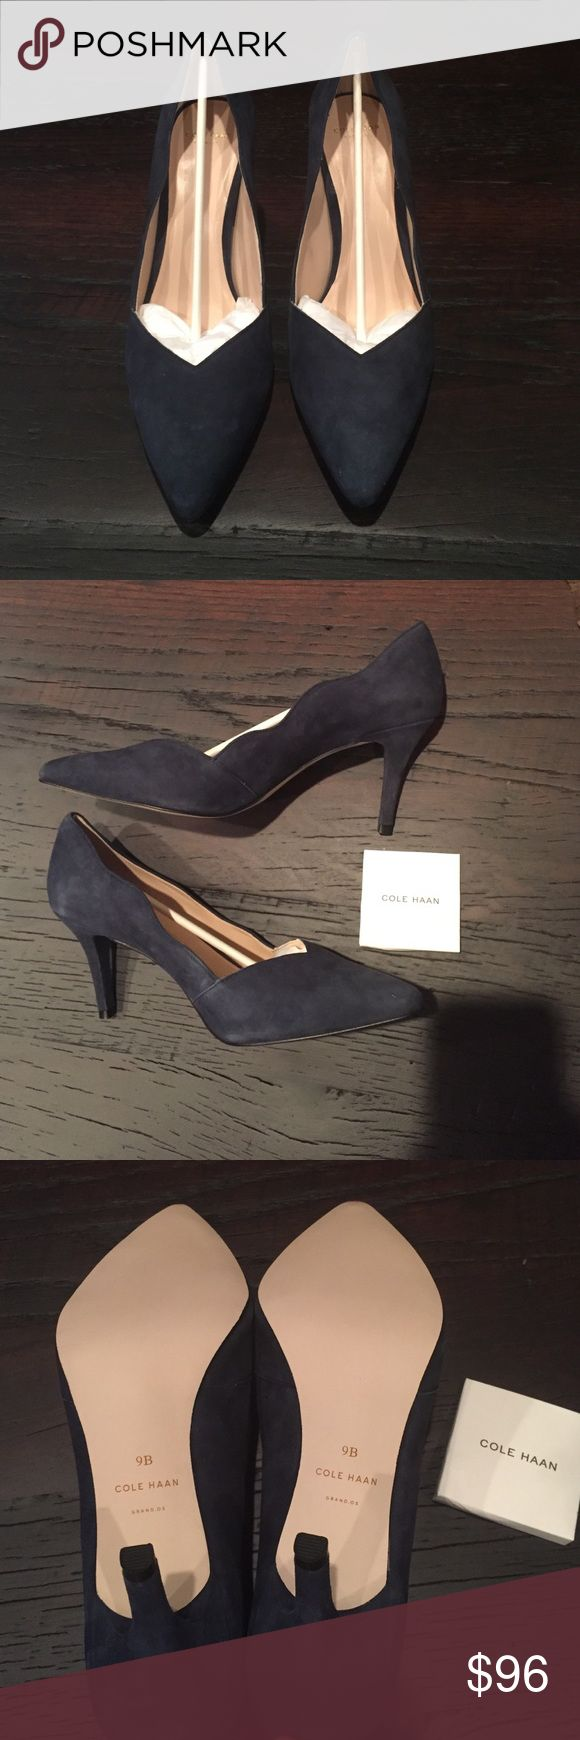 Cole Haan Lucille Pump Never worn! Size 9B. Color India Ink Cole Haan Shoes Heels